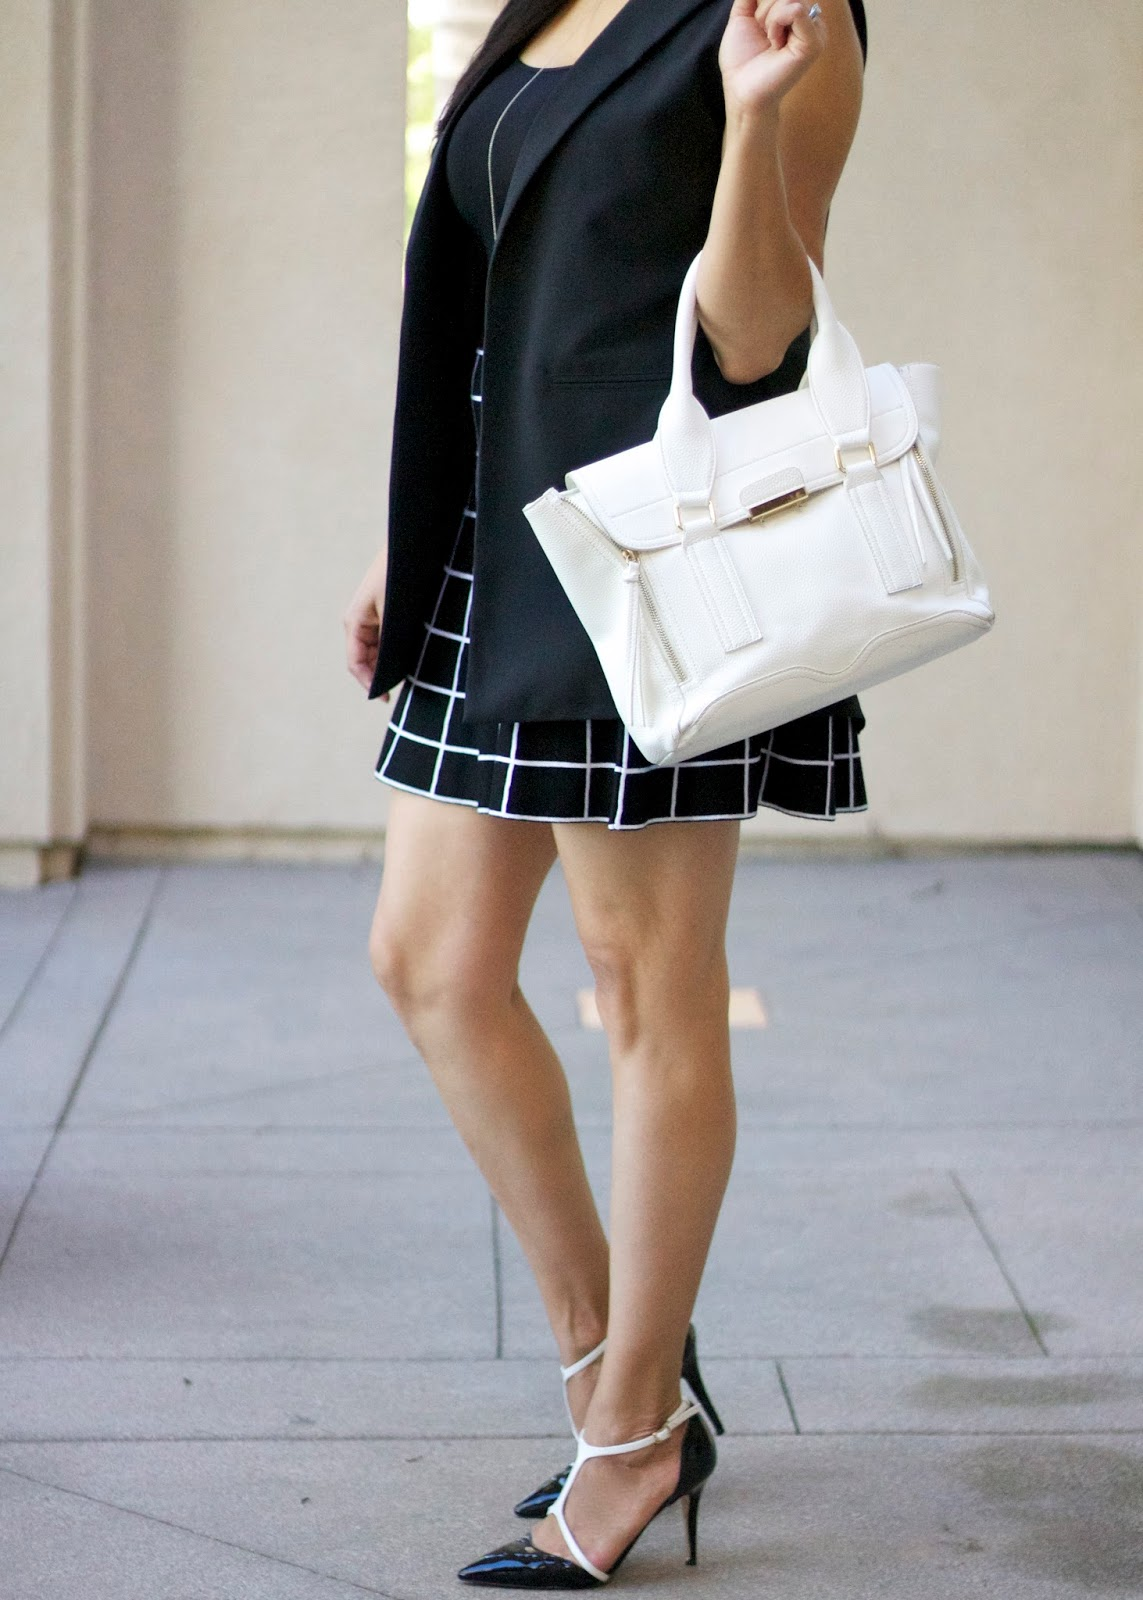 black and white outfit combo, black and white plaid, sleek outfit, forever 21 sleek outfit